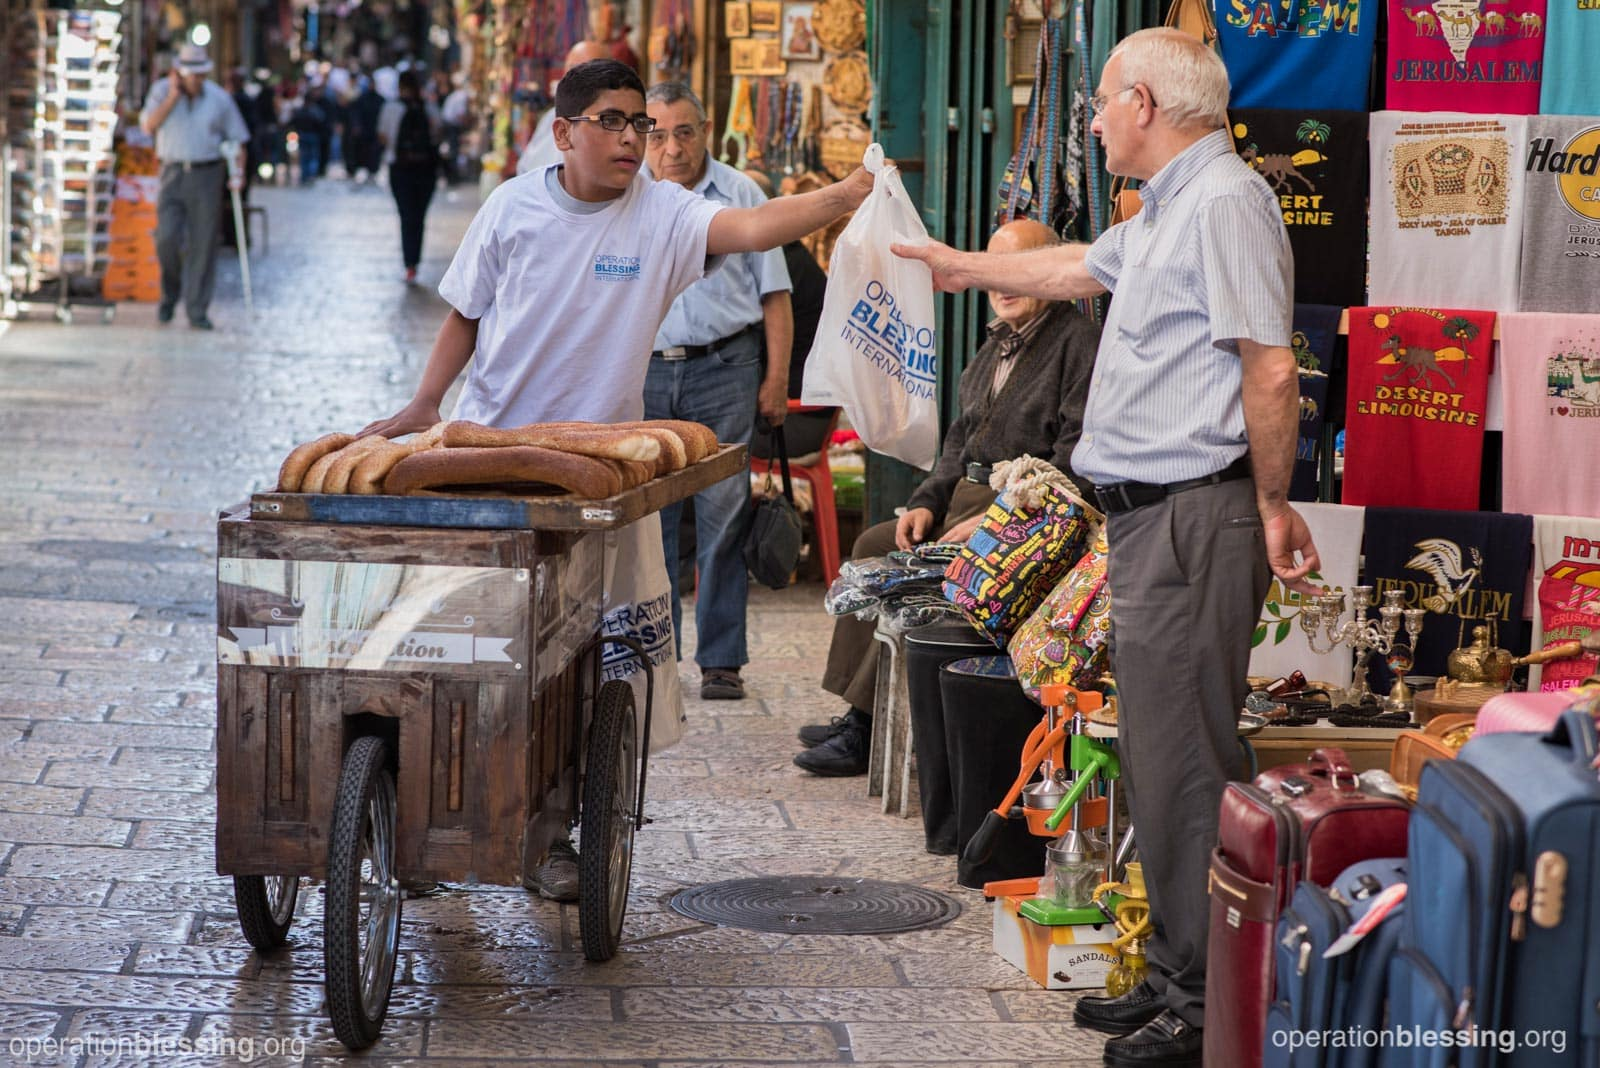 An Operation Blessing program delivers bread to the hungry in the Old City of Jerusalem.